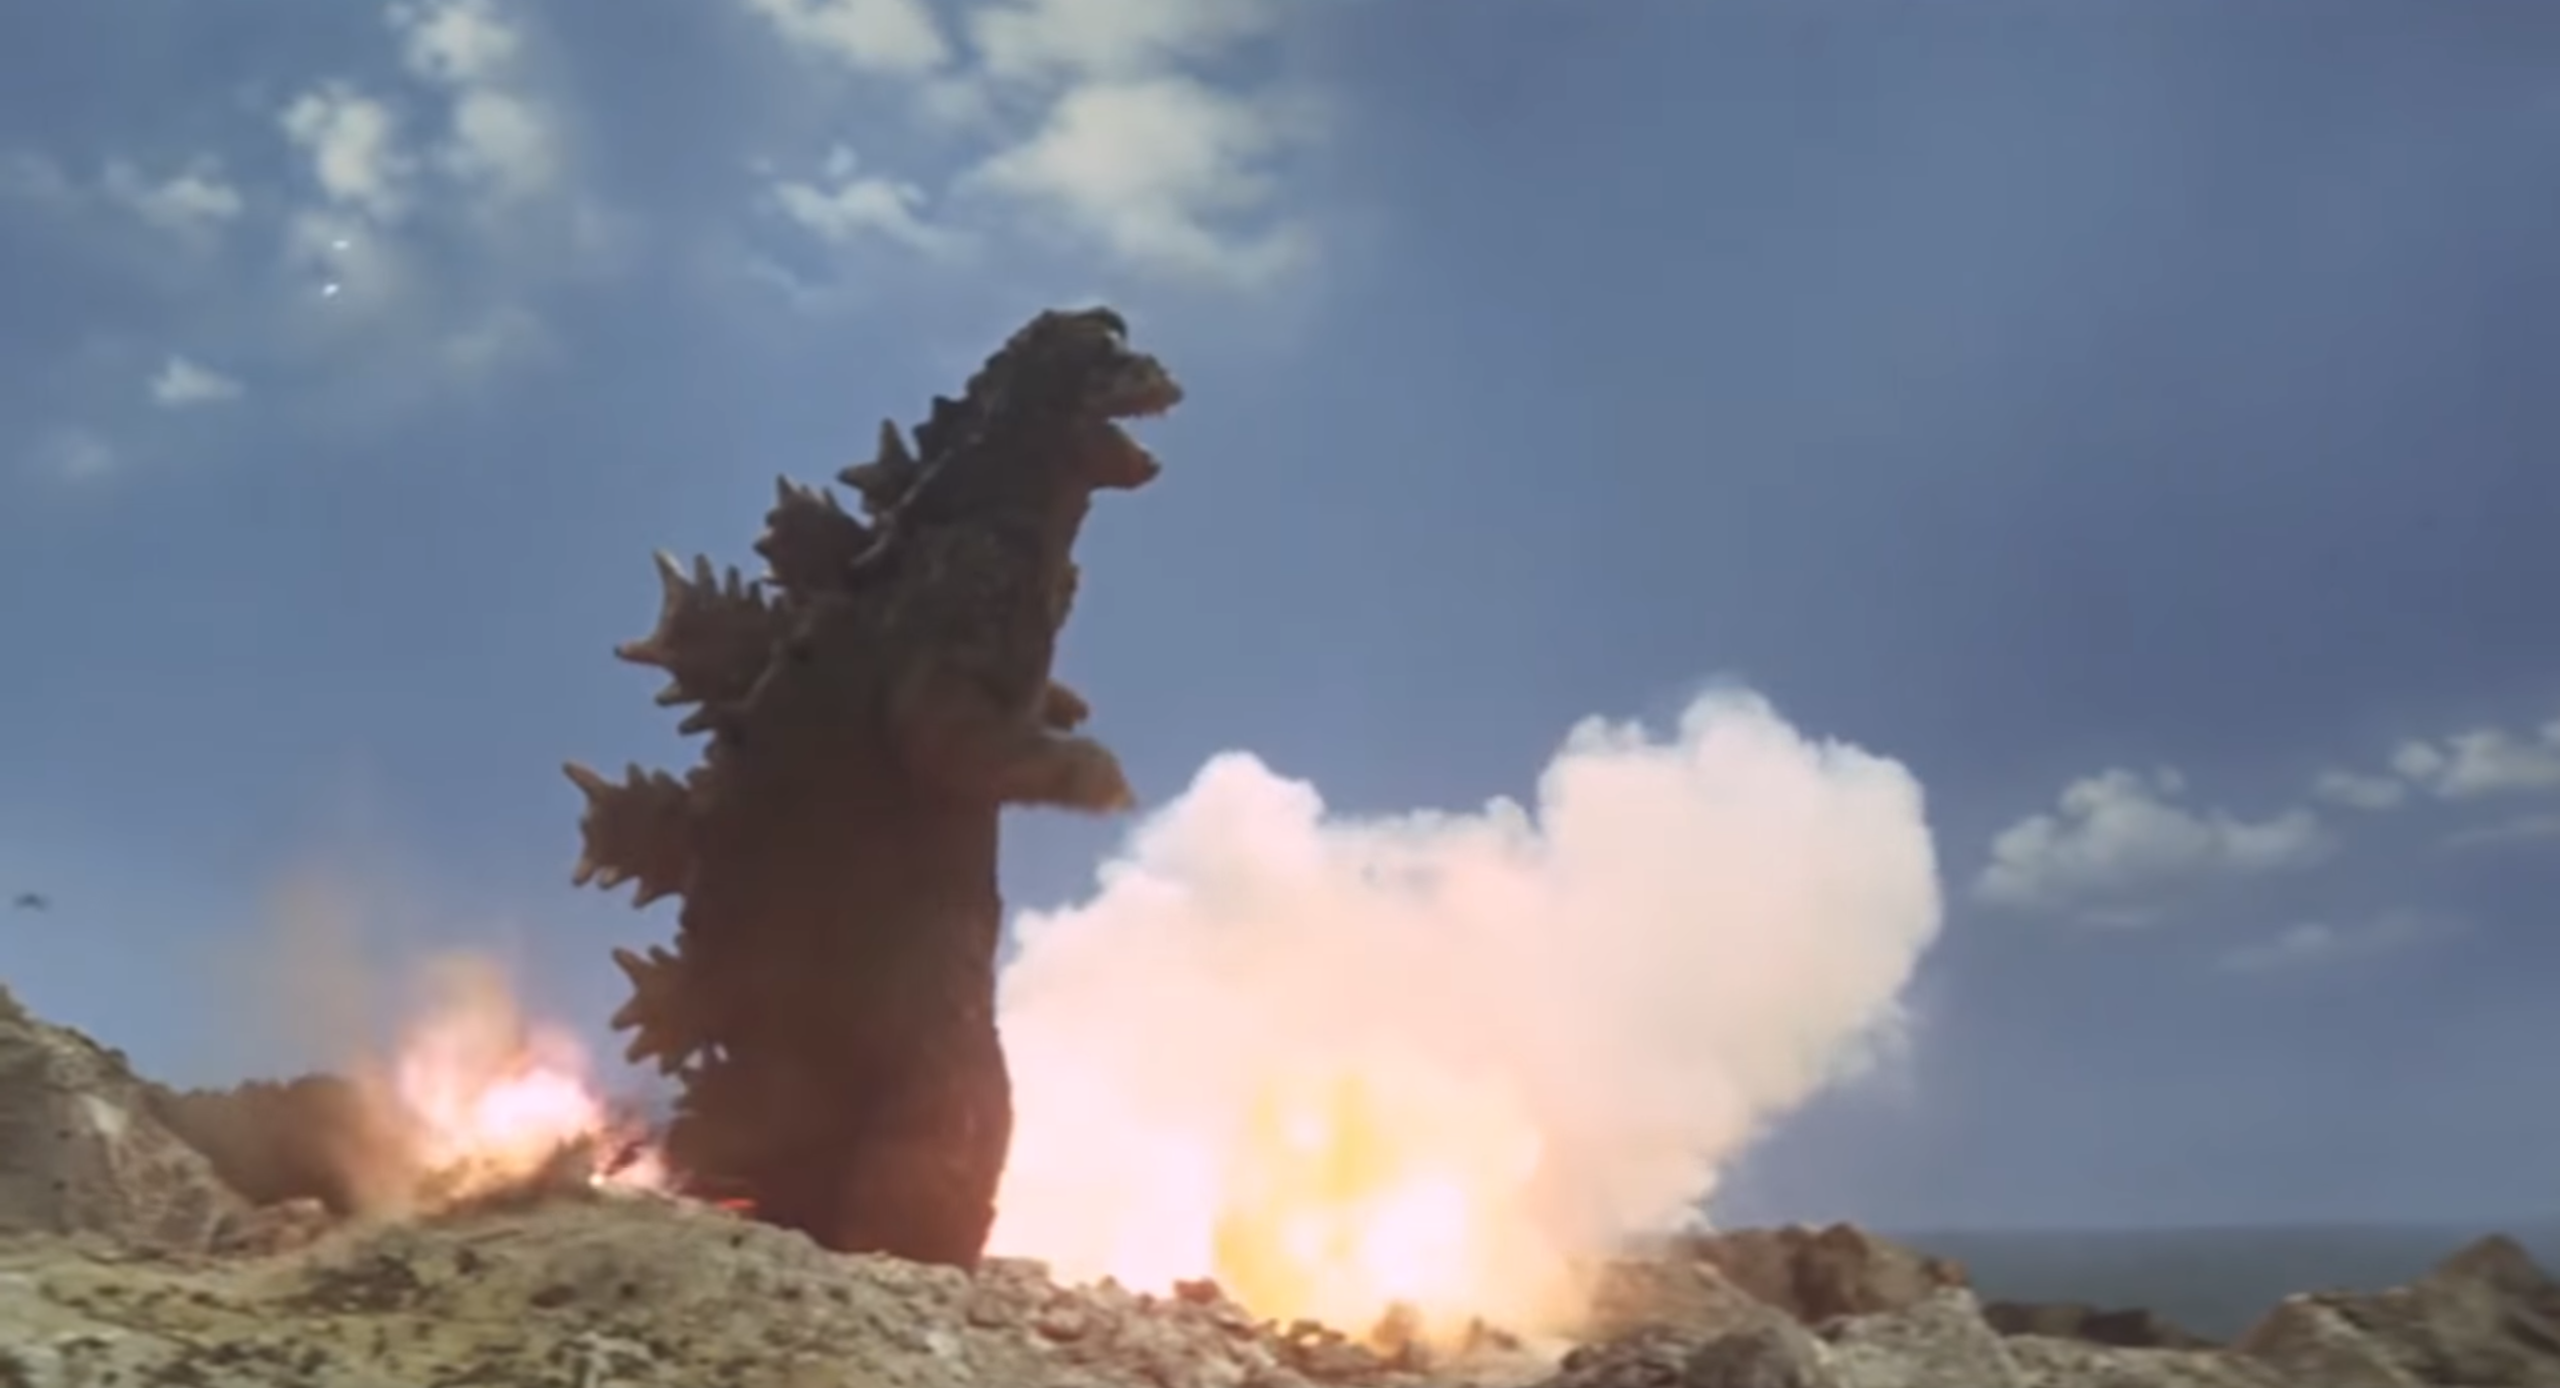 fan-trailer godzilla godzilla-king-of-the-monsters io9 kaiju mashups tokusatsu